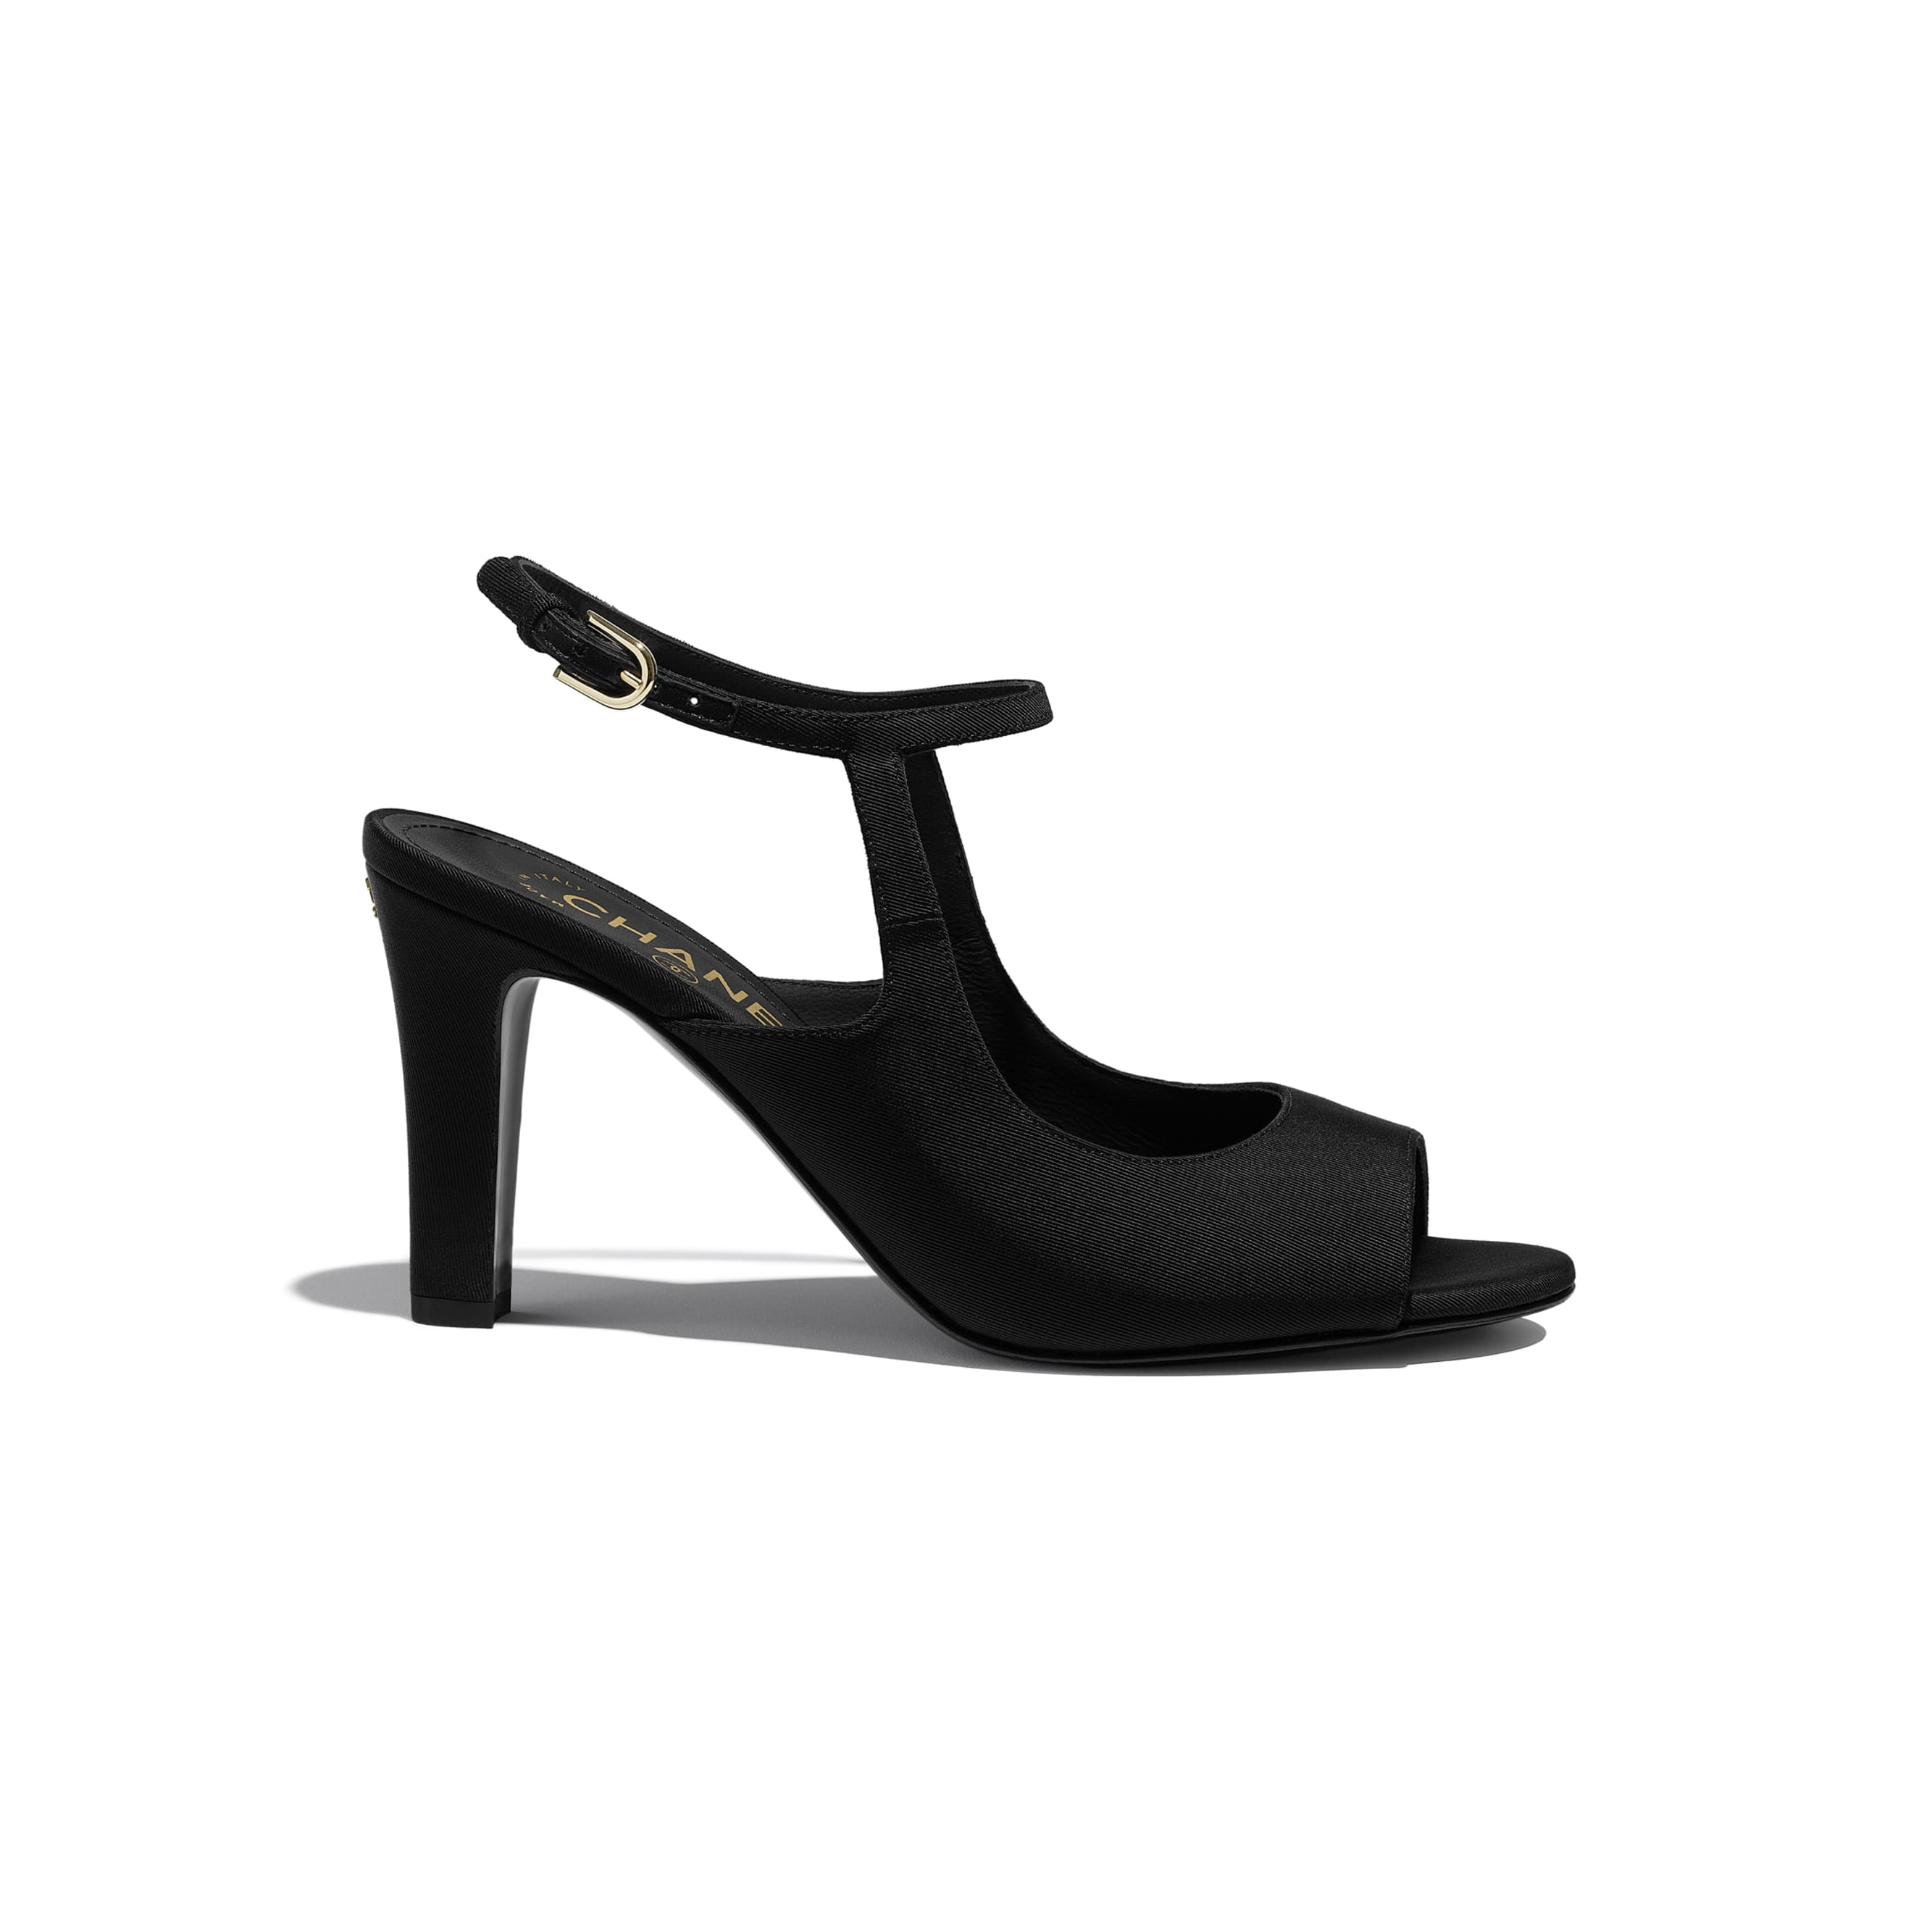 Sandals - Black - Grosgrain - CHANEL - Default view - see standard sized version